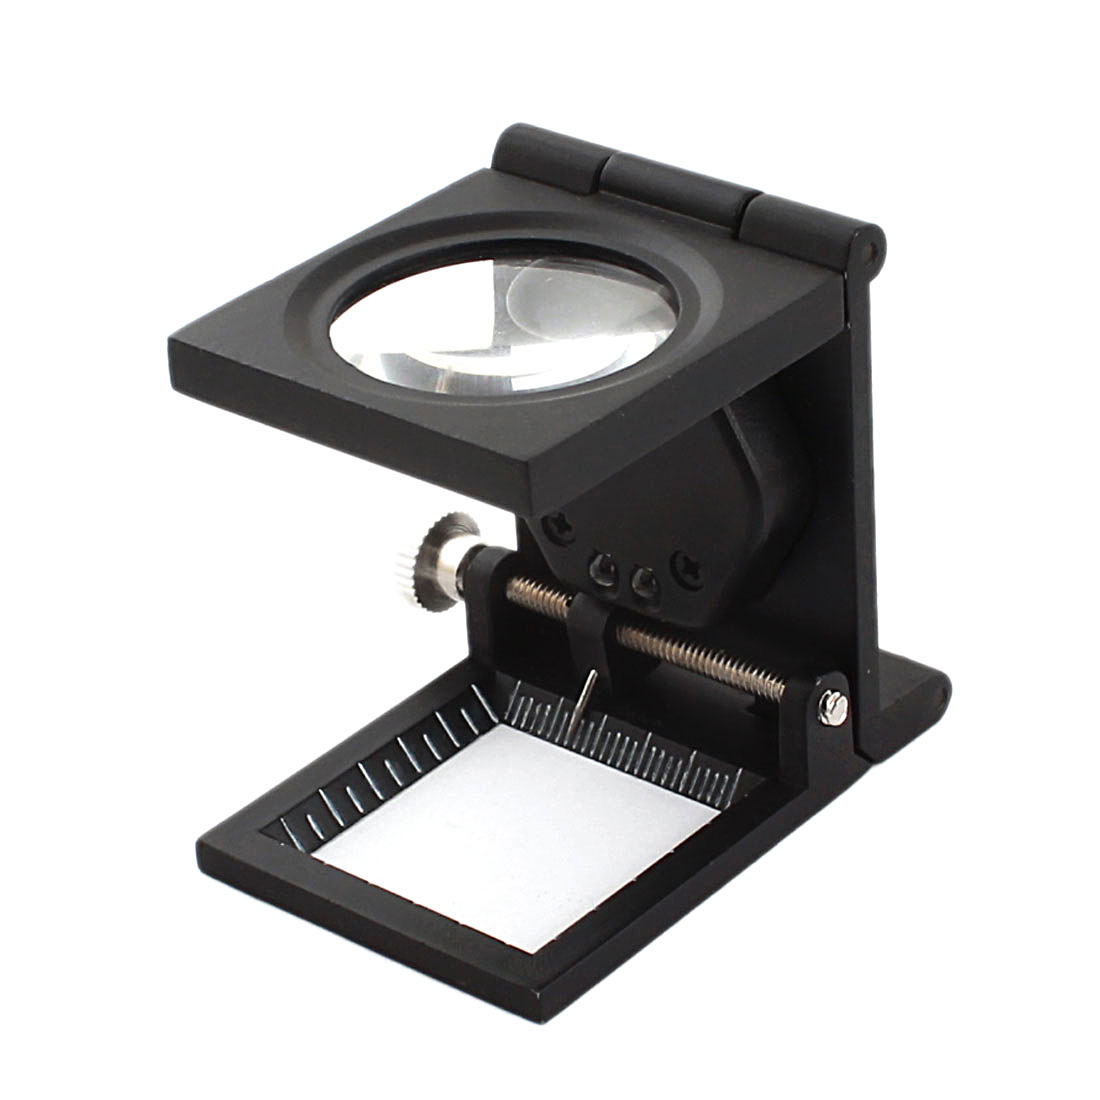 Folding Magnifier Measure Scale LED Light Magnifying Glass Black 4X